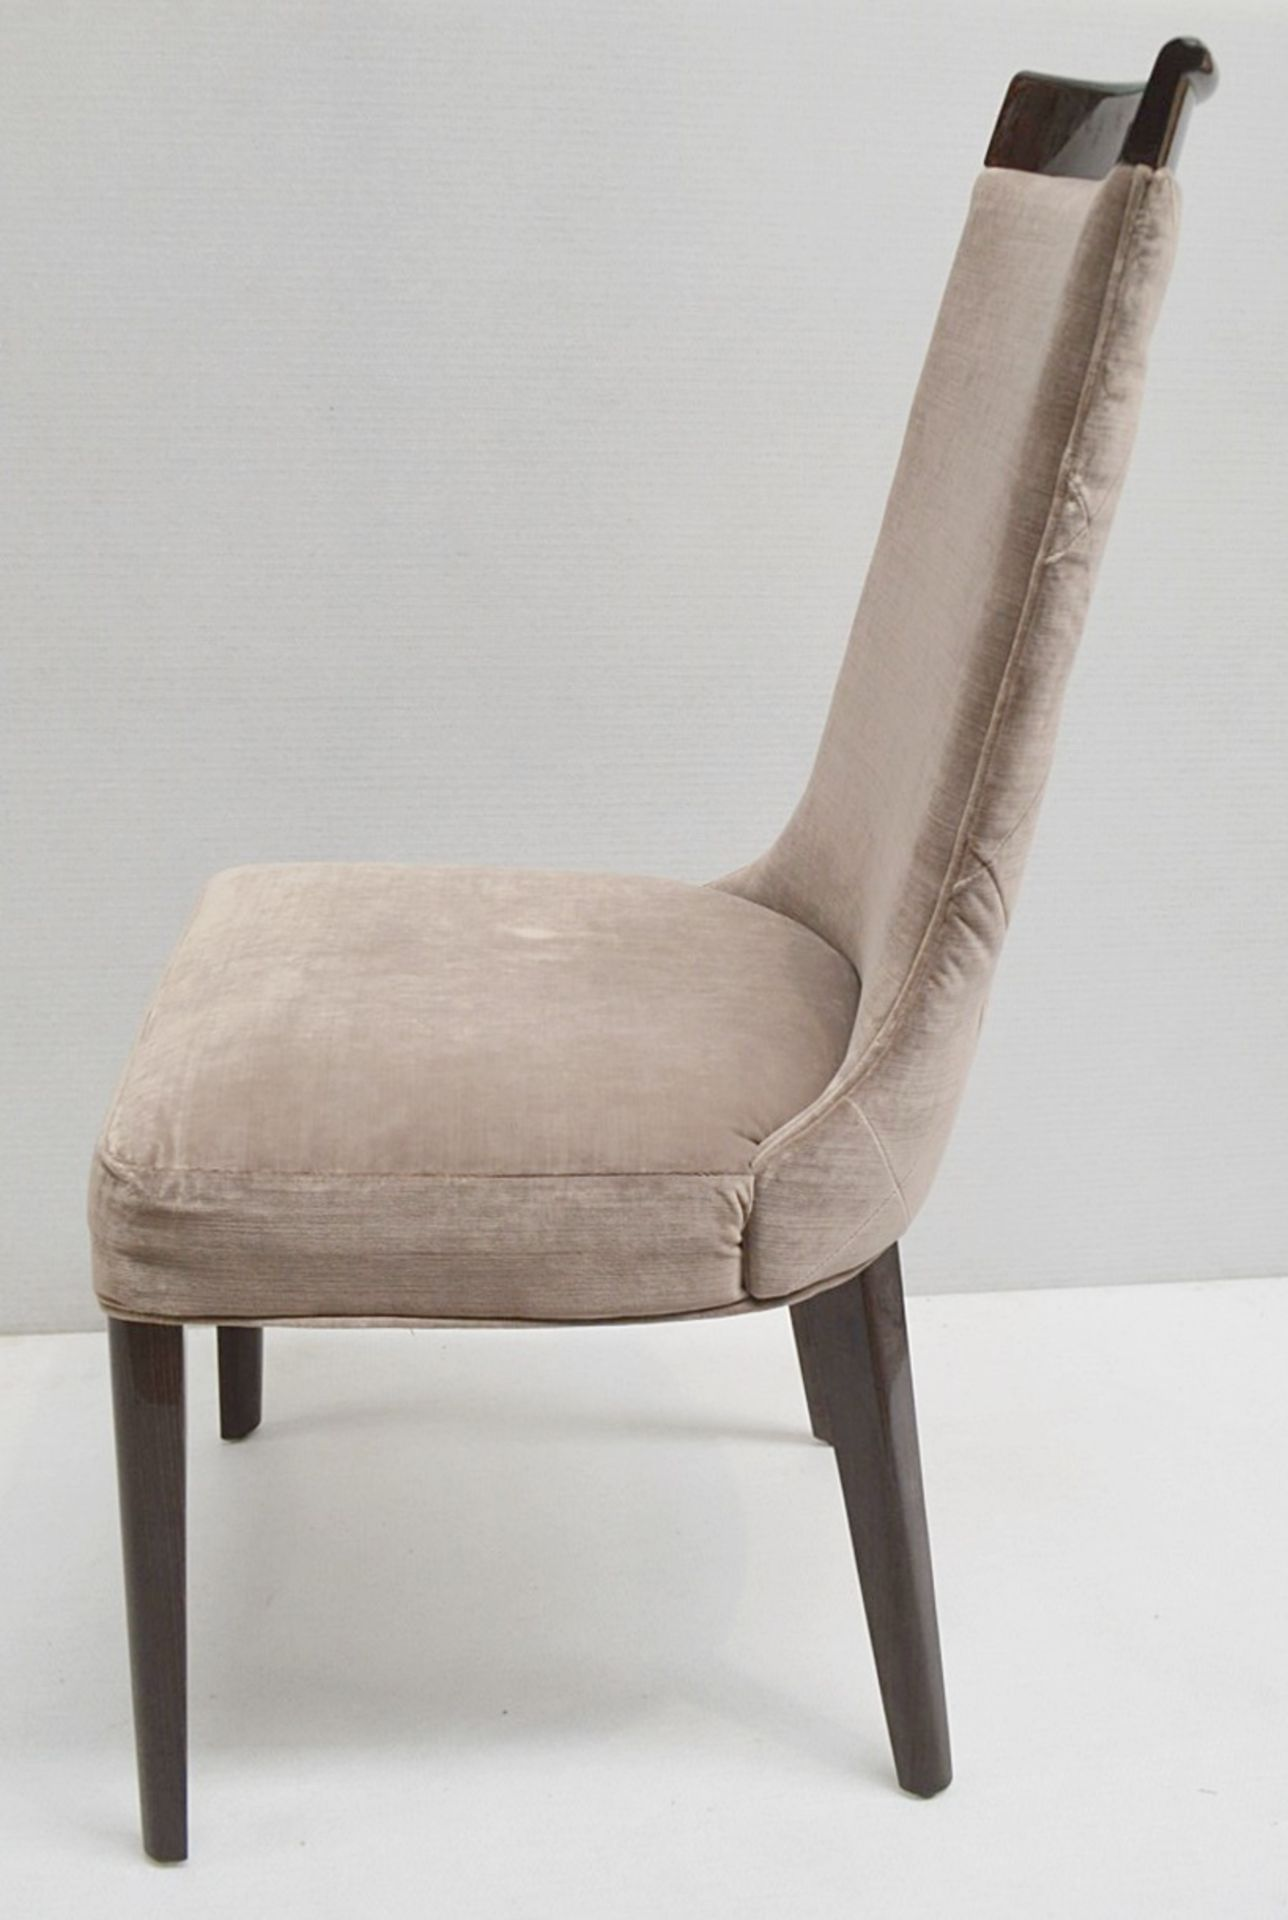 4 x GIORGIO Coliseum Velvet Upholstered Button Back Side Chairs With A Brazilian Rosewood Finish - - Image 2 of 11